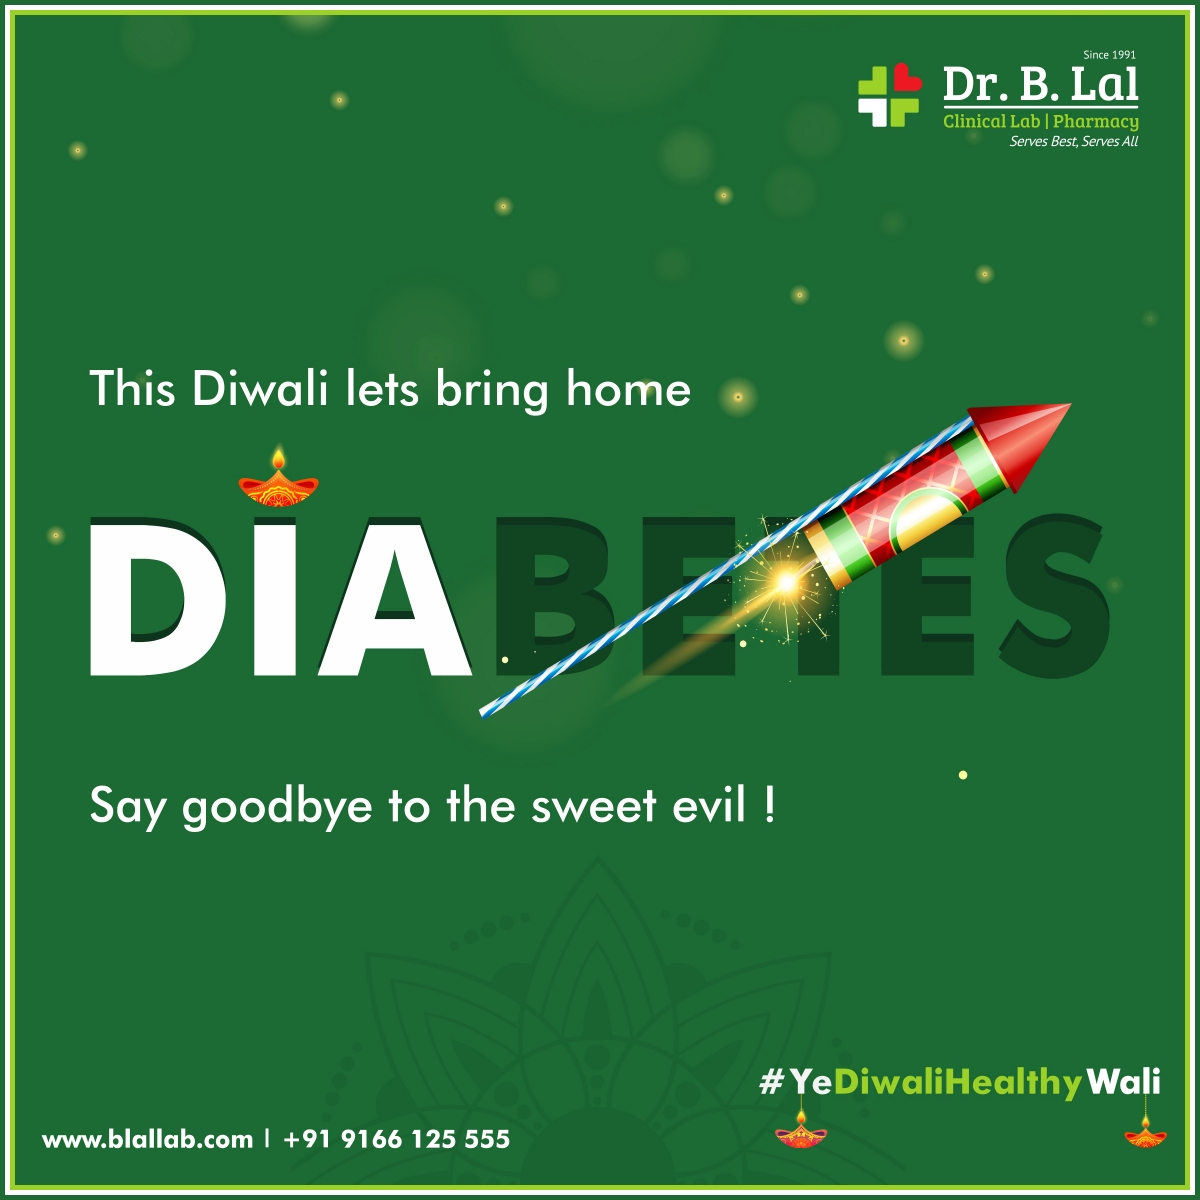 #YeDiwaliHealthyWali | Diabetes Suraksha Subscription